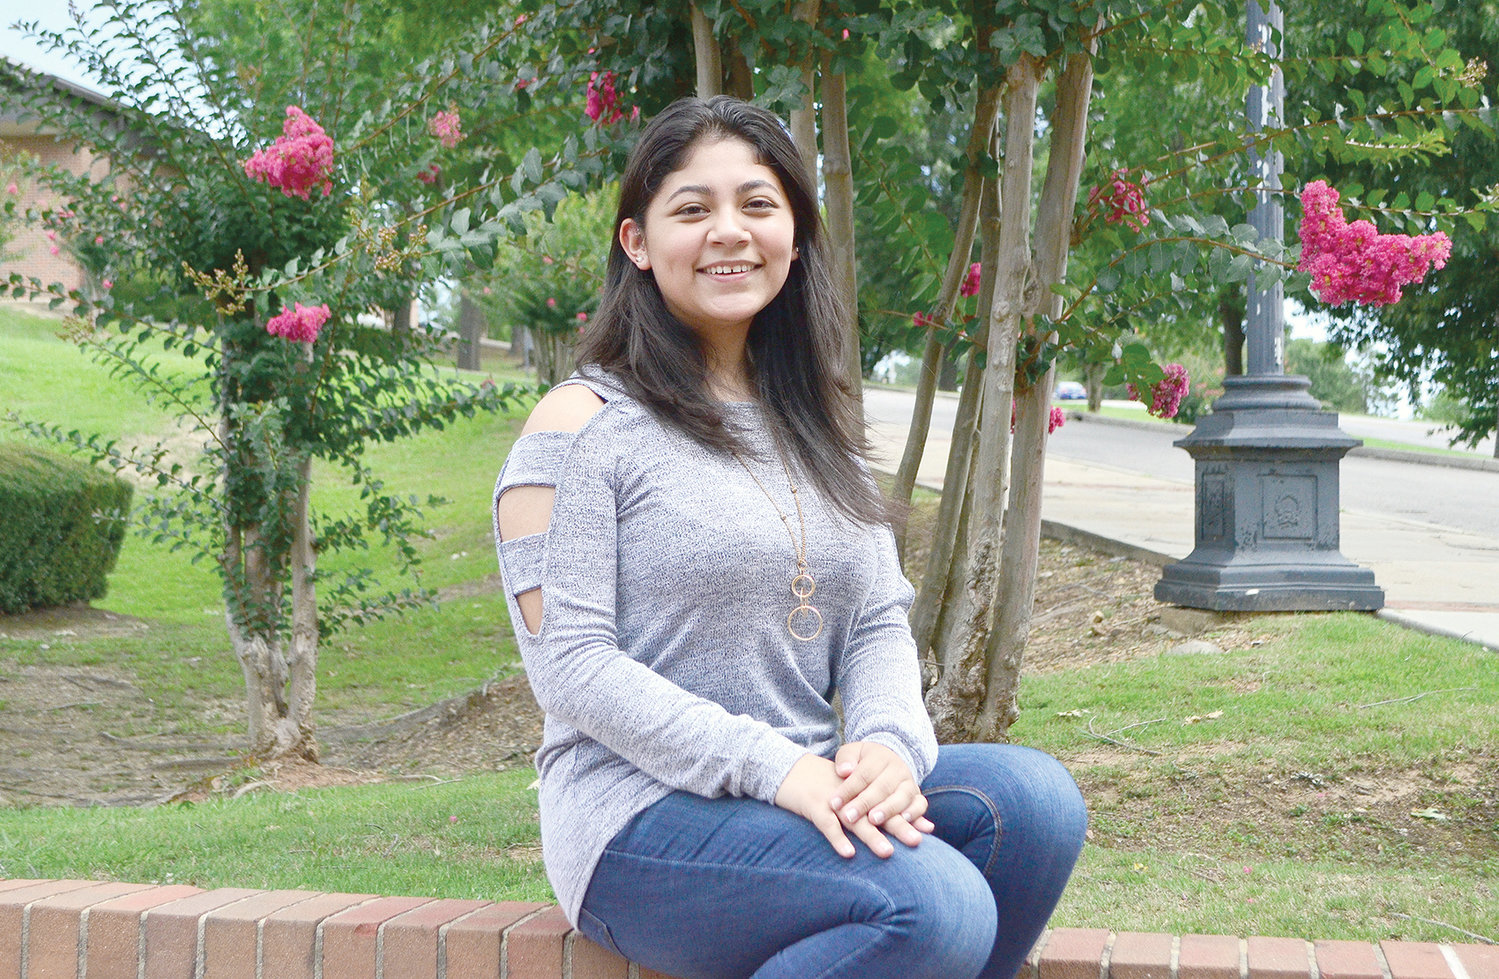 Upward Bound student Araceli Ramirez is determined to succeed in honor of her parents.